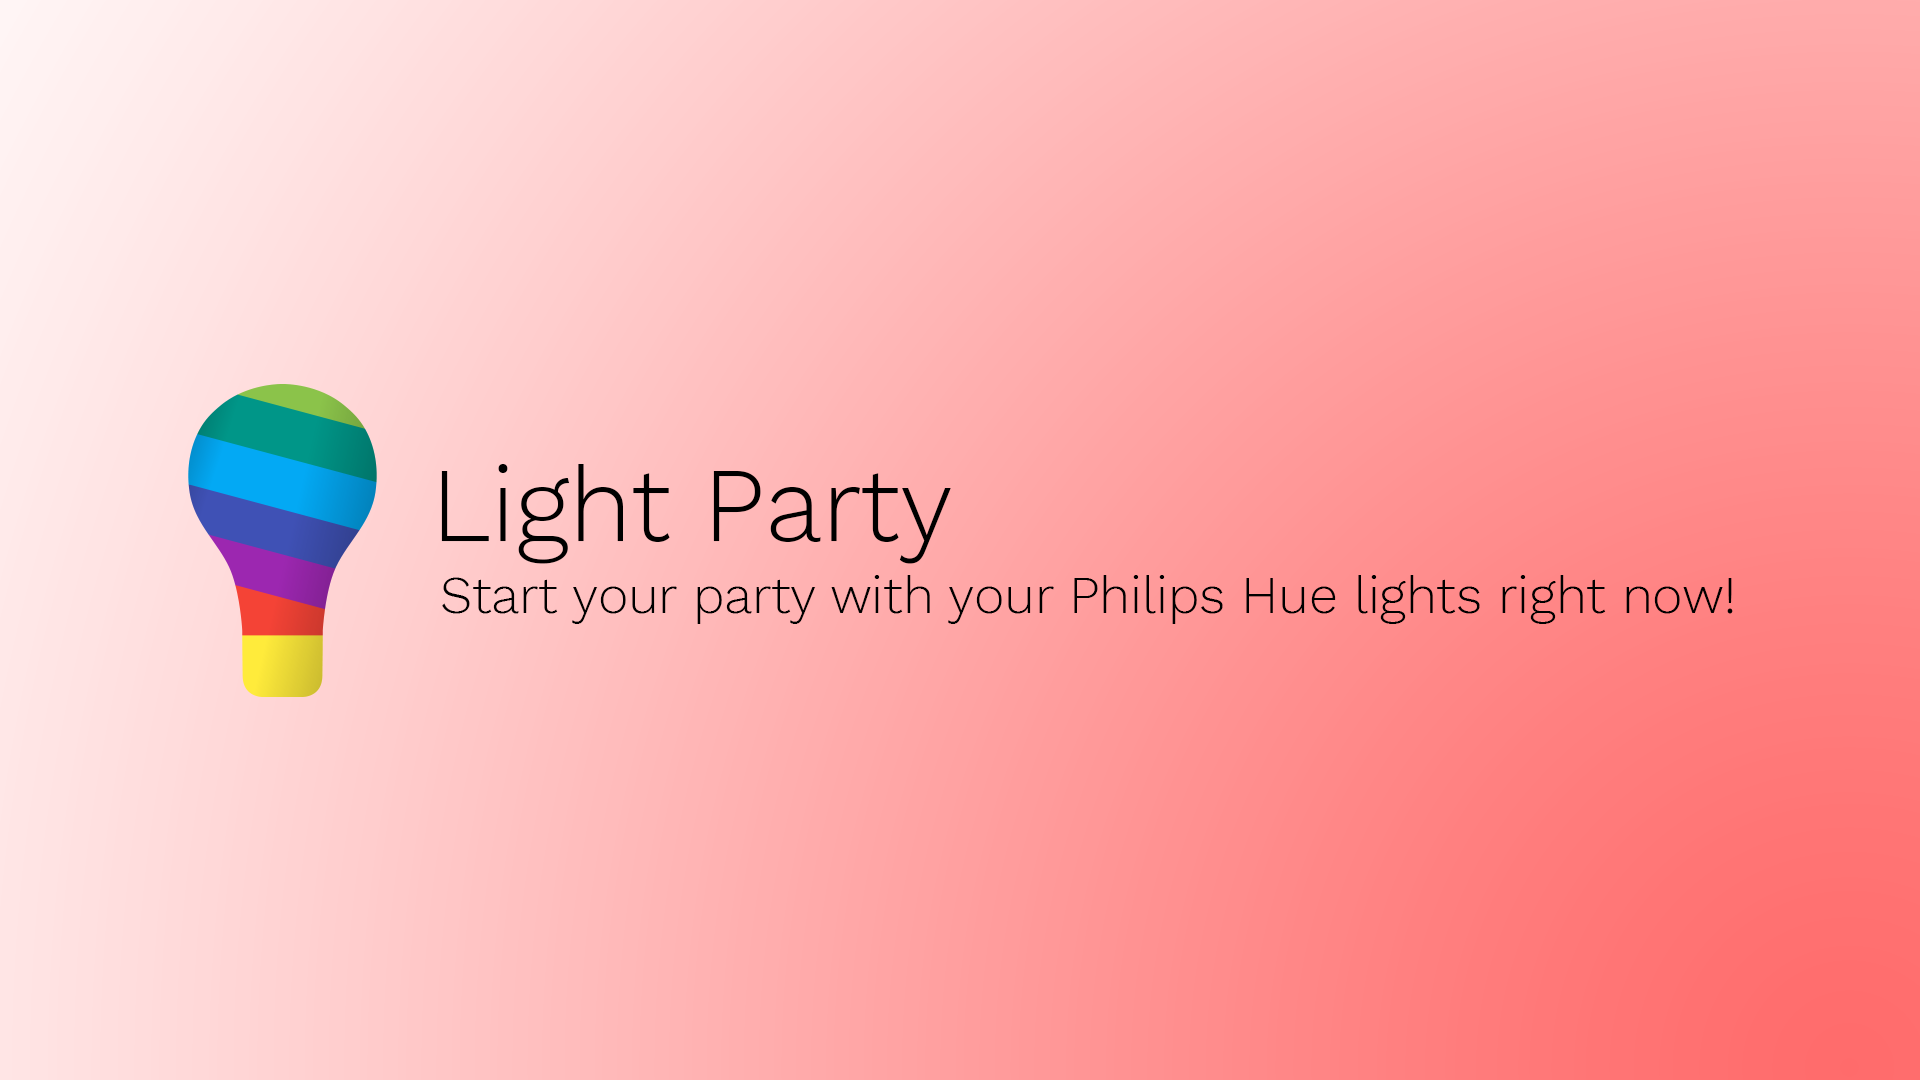 Preview image for Light Party